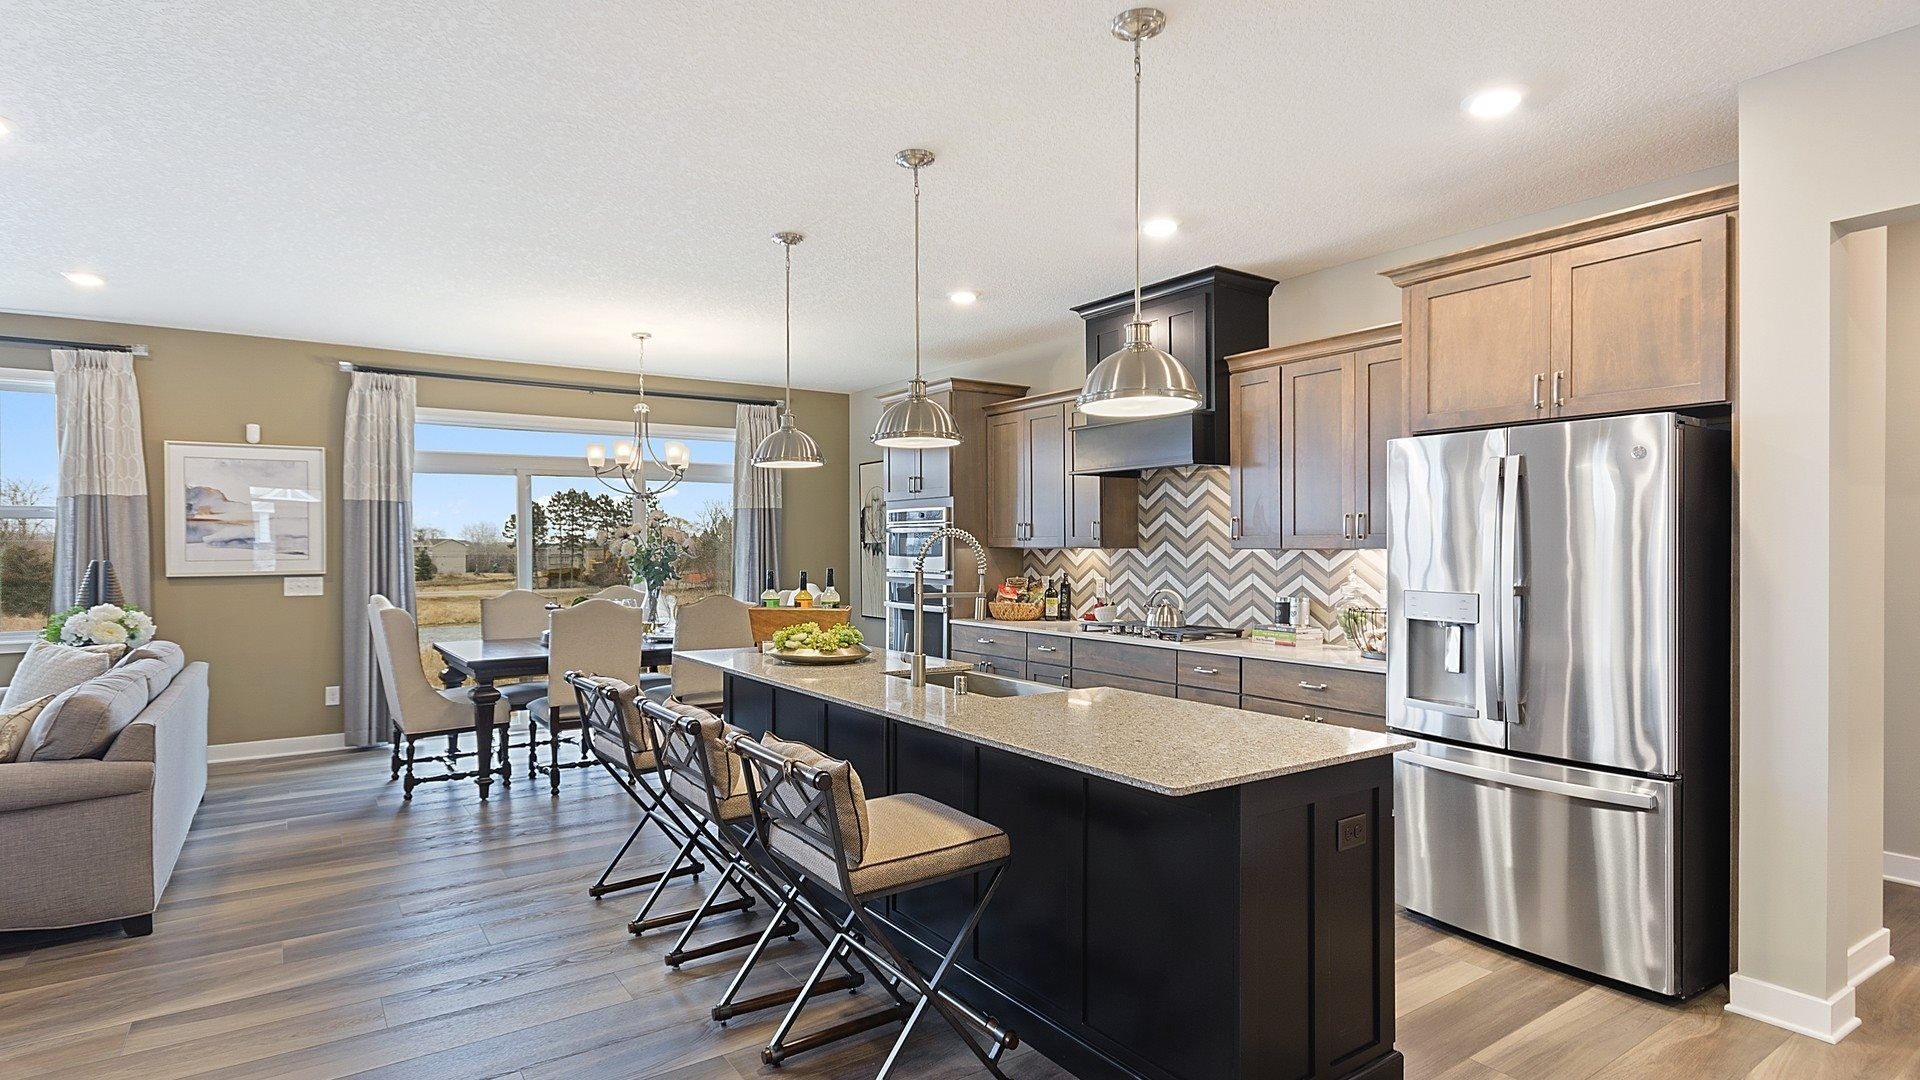 New Homes for Sale in Woodbury